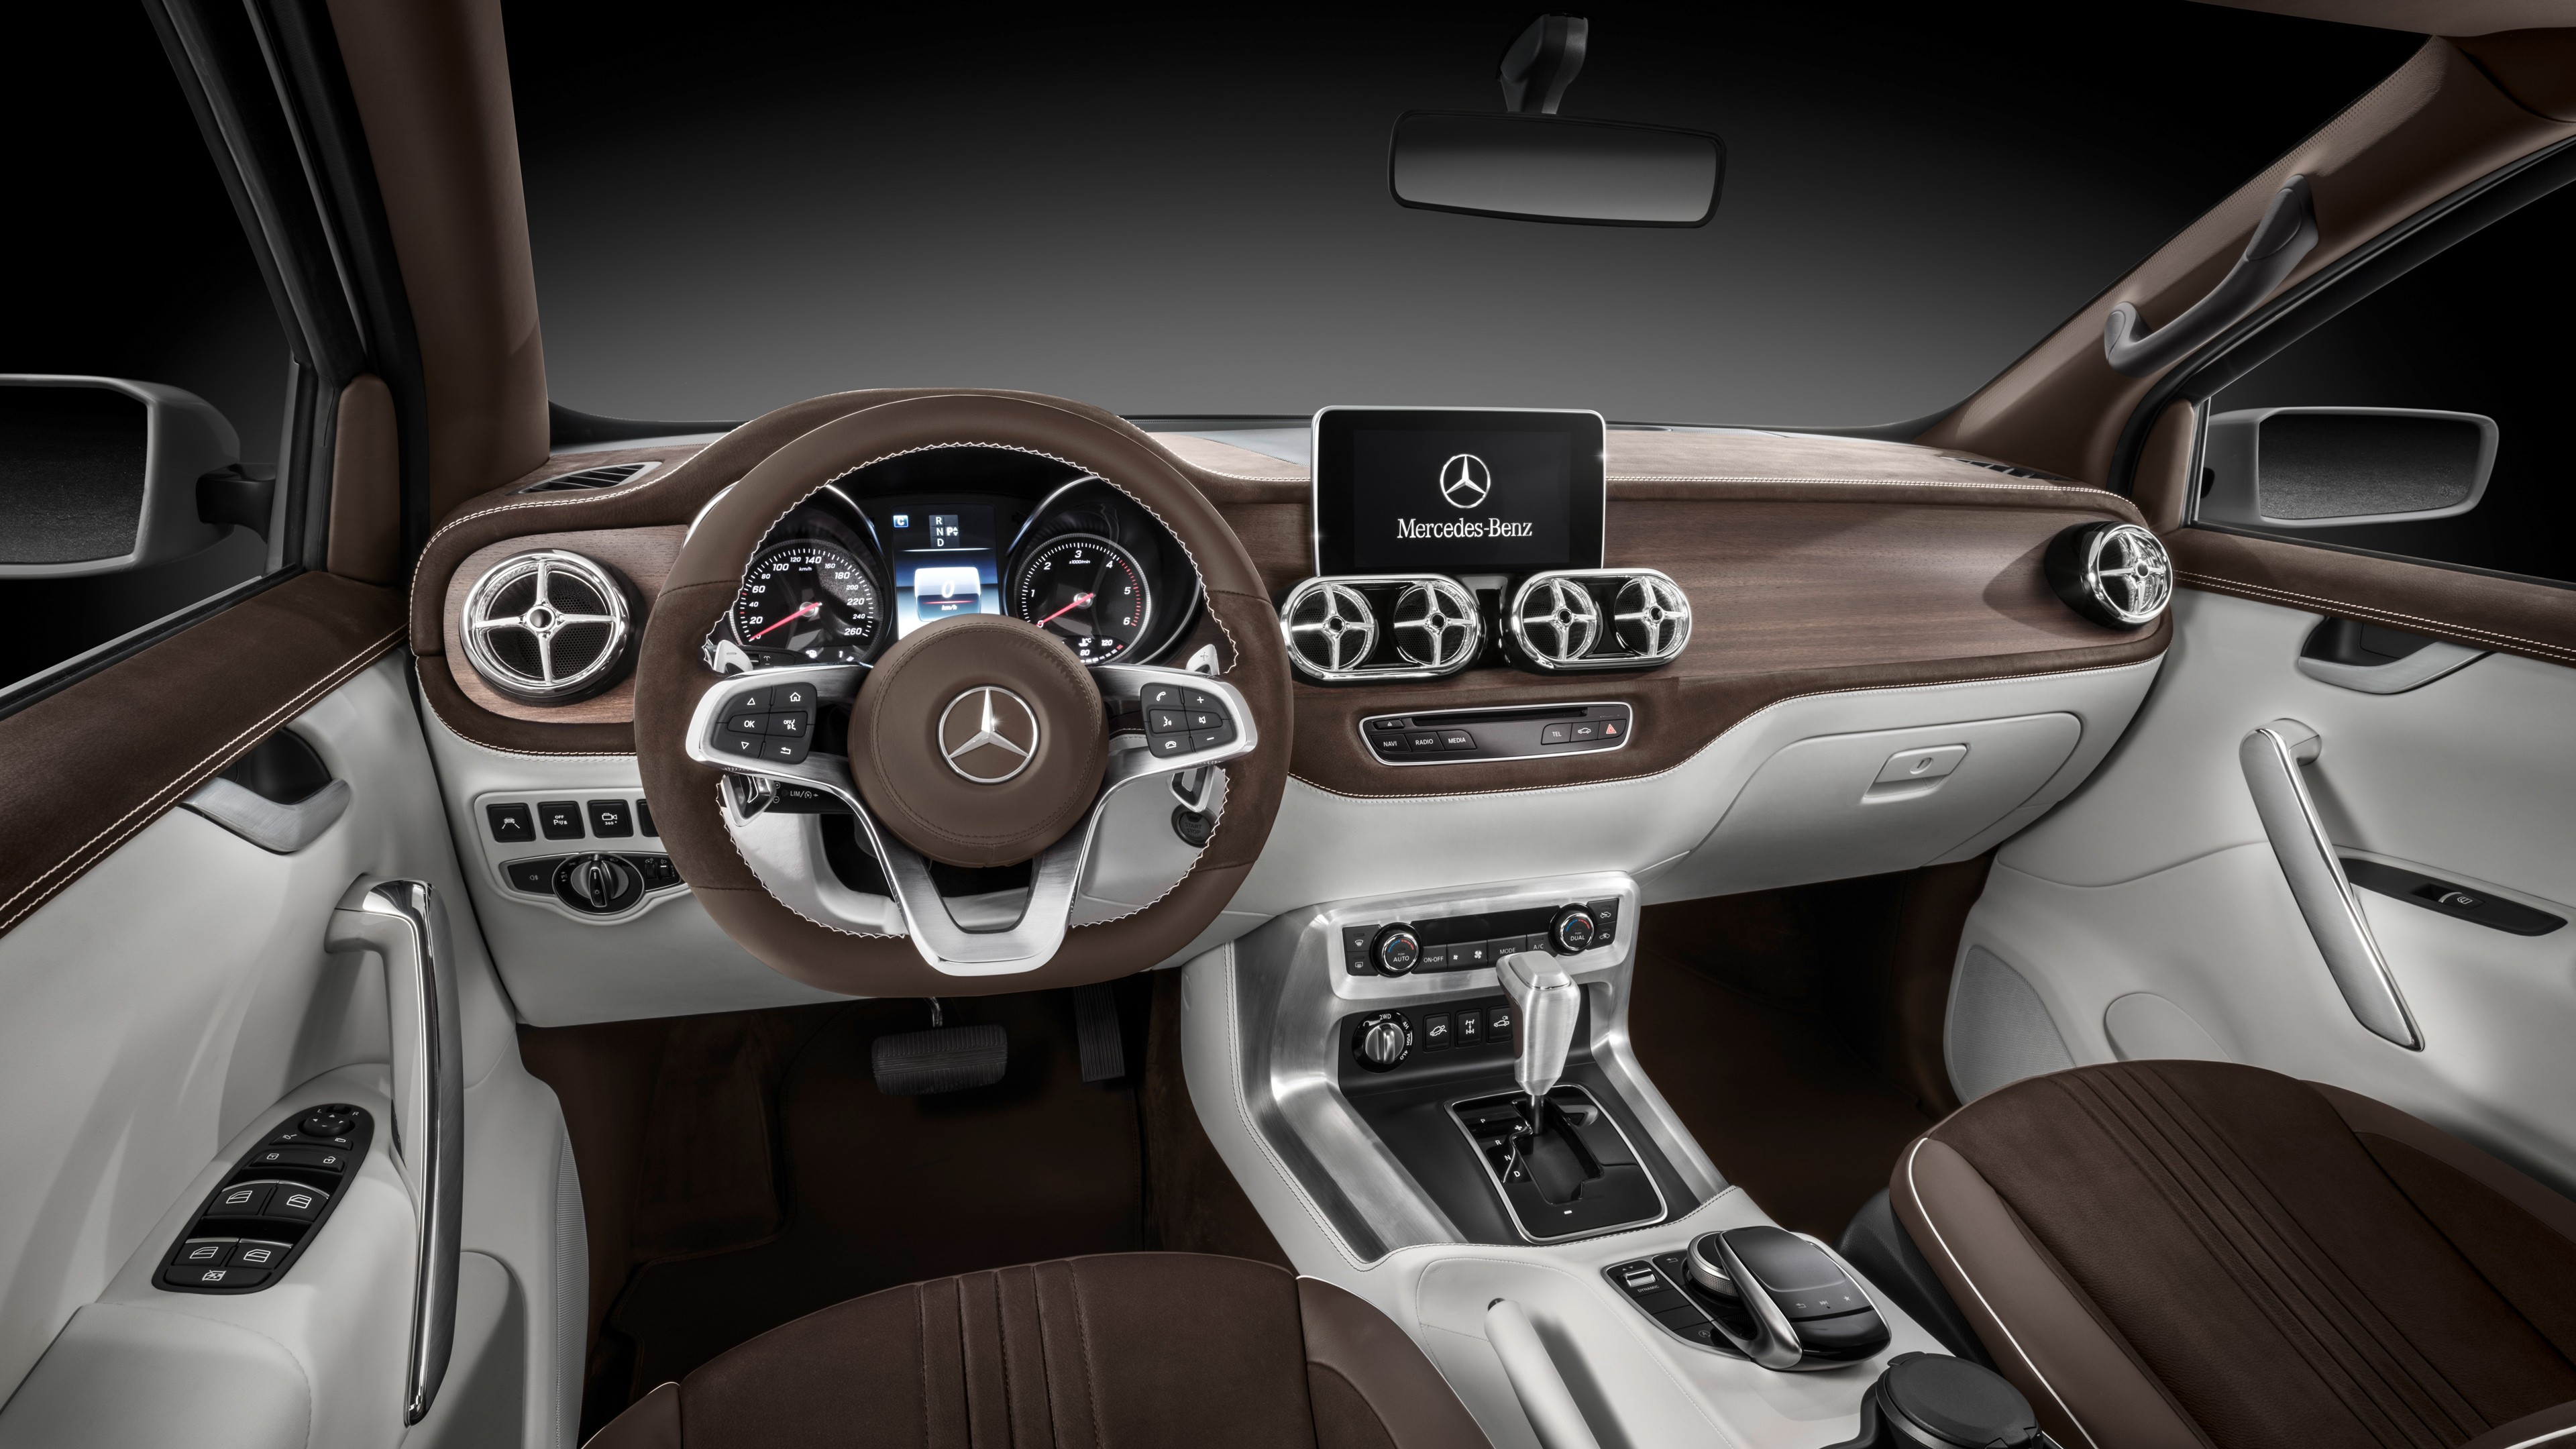 2017 Mercedes Benz X Class Pickup Truck Interior Wallpaper